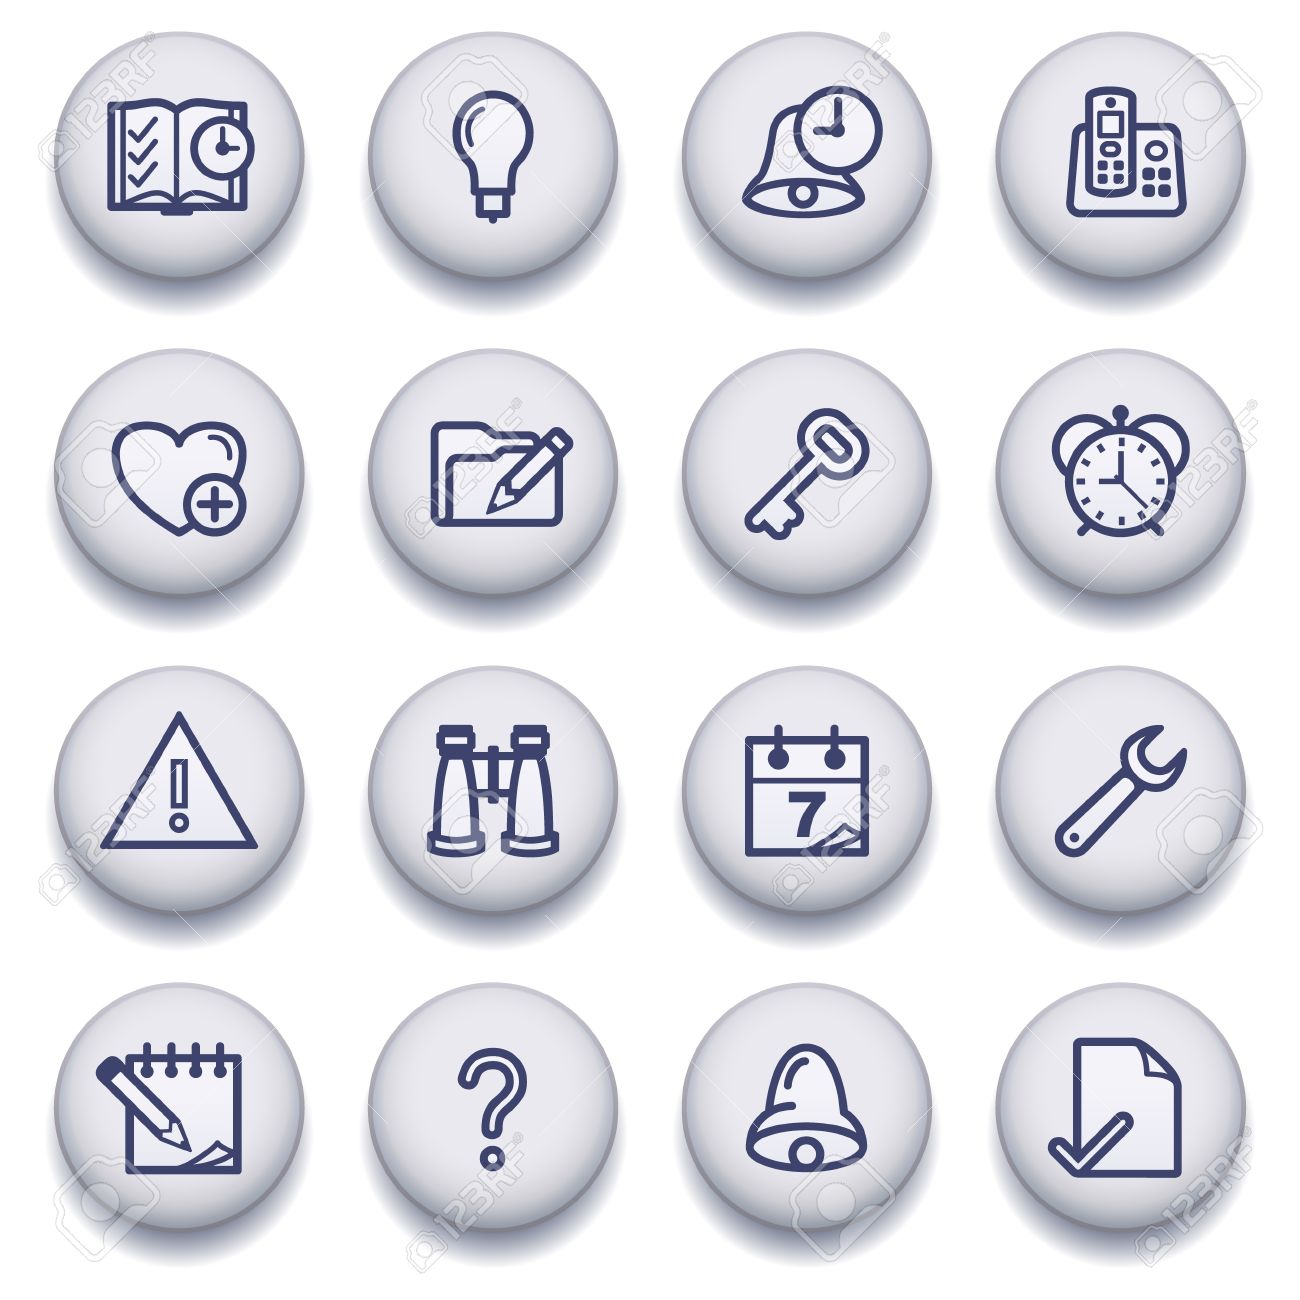 icons set for websites, guides, booklets. Stock Vector - 13835964